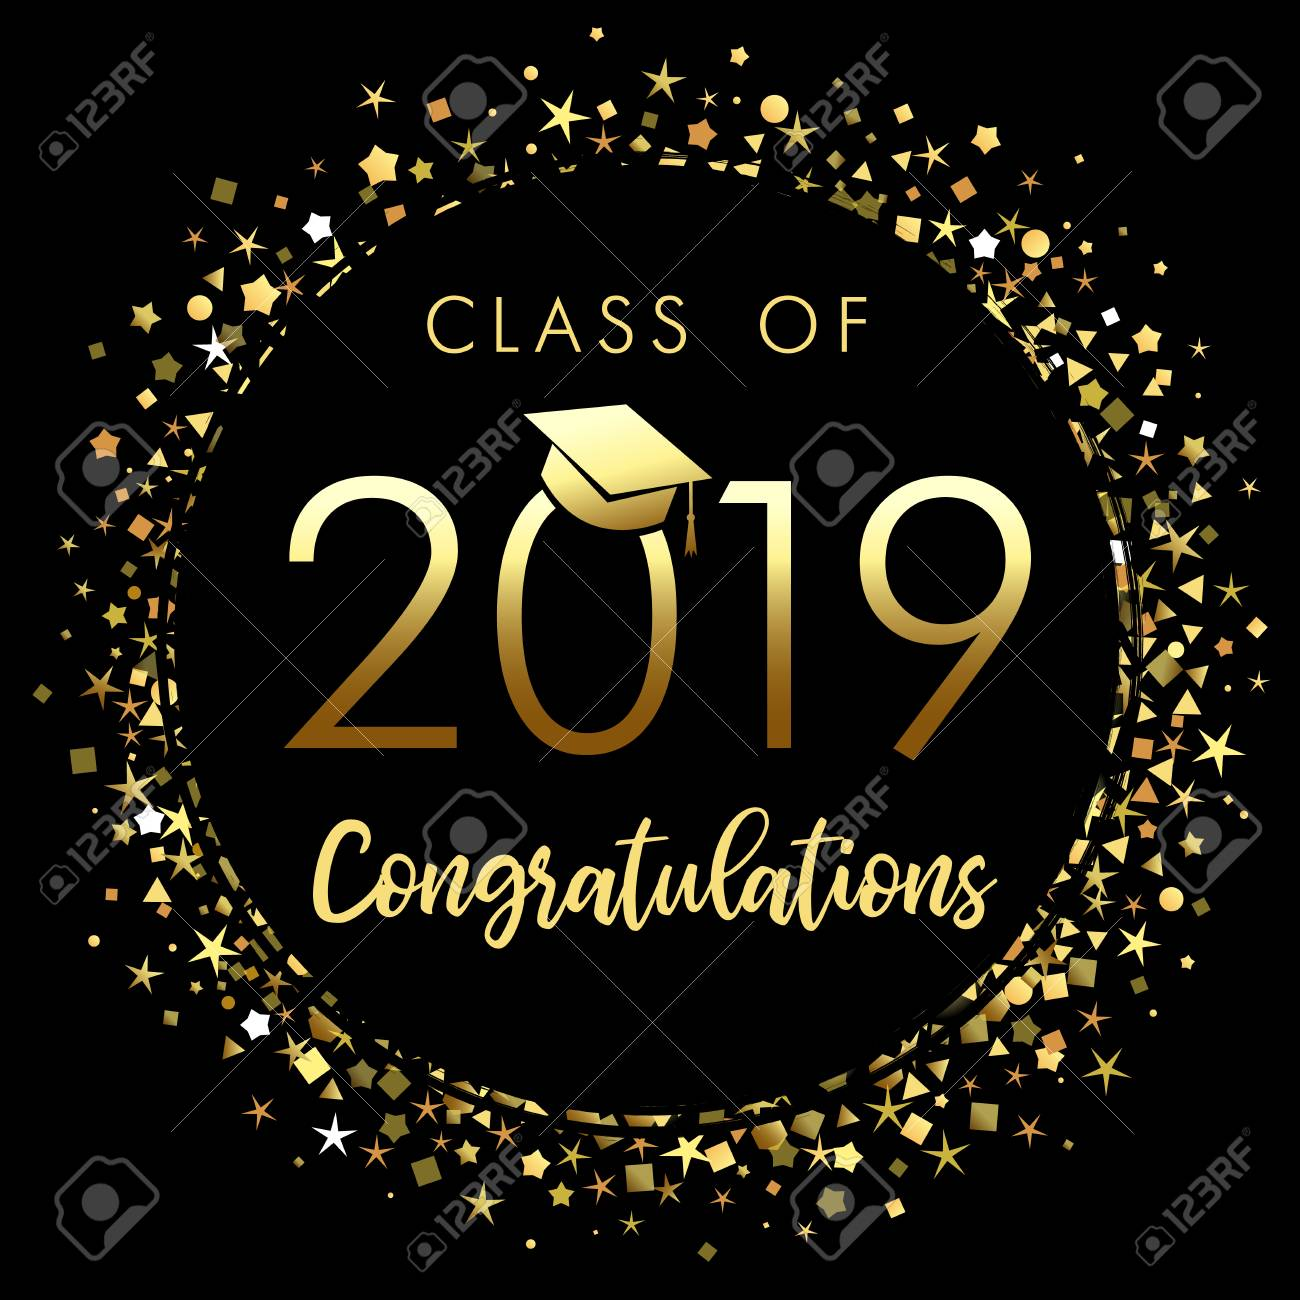 Class of 2019 graduation poster with gold glitter confetti. Class of 20 19 congratulations for your design cards, invitations or banner - 114747640